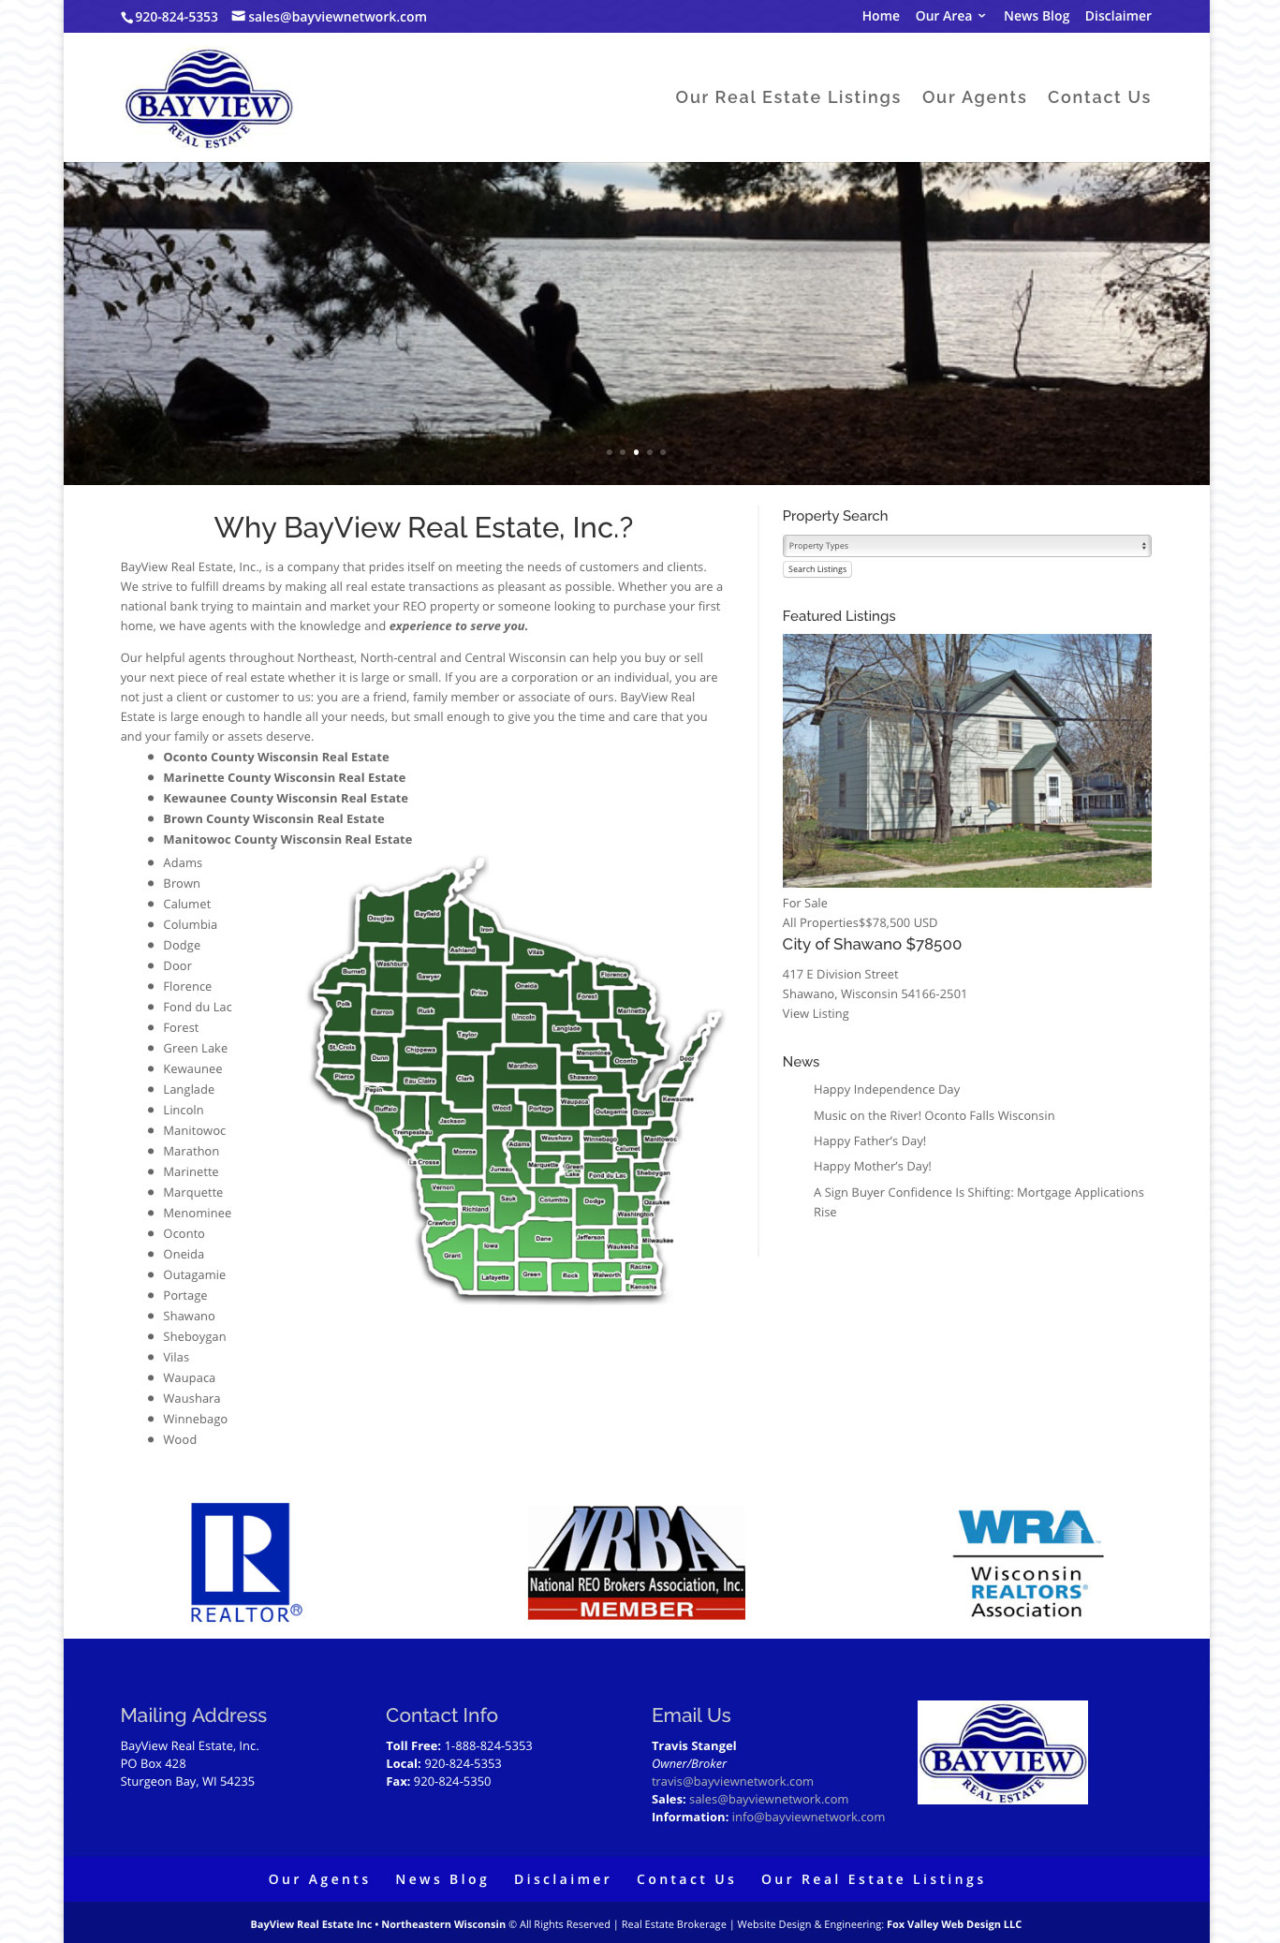 bayview real estate inc,bayview network,real estate for sale, wisconsin realtors,real estate for sale in northeast wisconsin